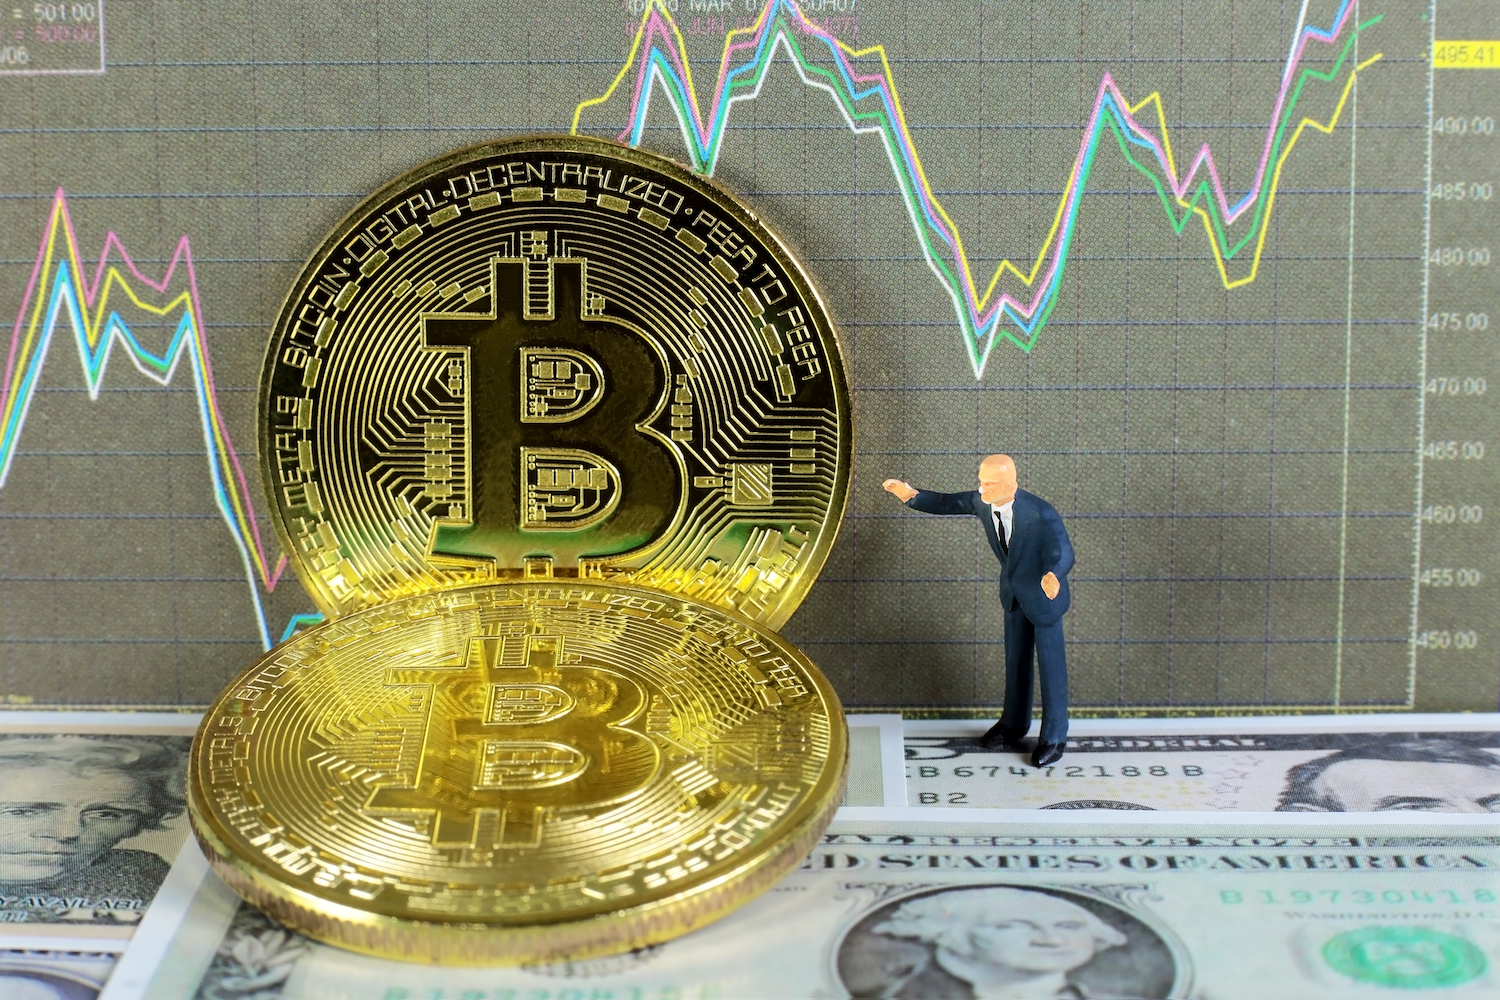 Successfully mining just one bitcoin block, and holding onto it since 2010 would mean you have $450,000 worth of bitcoin in your wallet in 2020. Bitstamp Partners with Banking Giant for Bitcoin